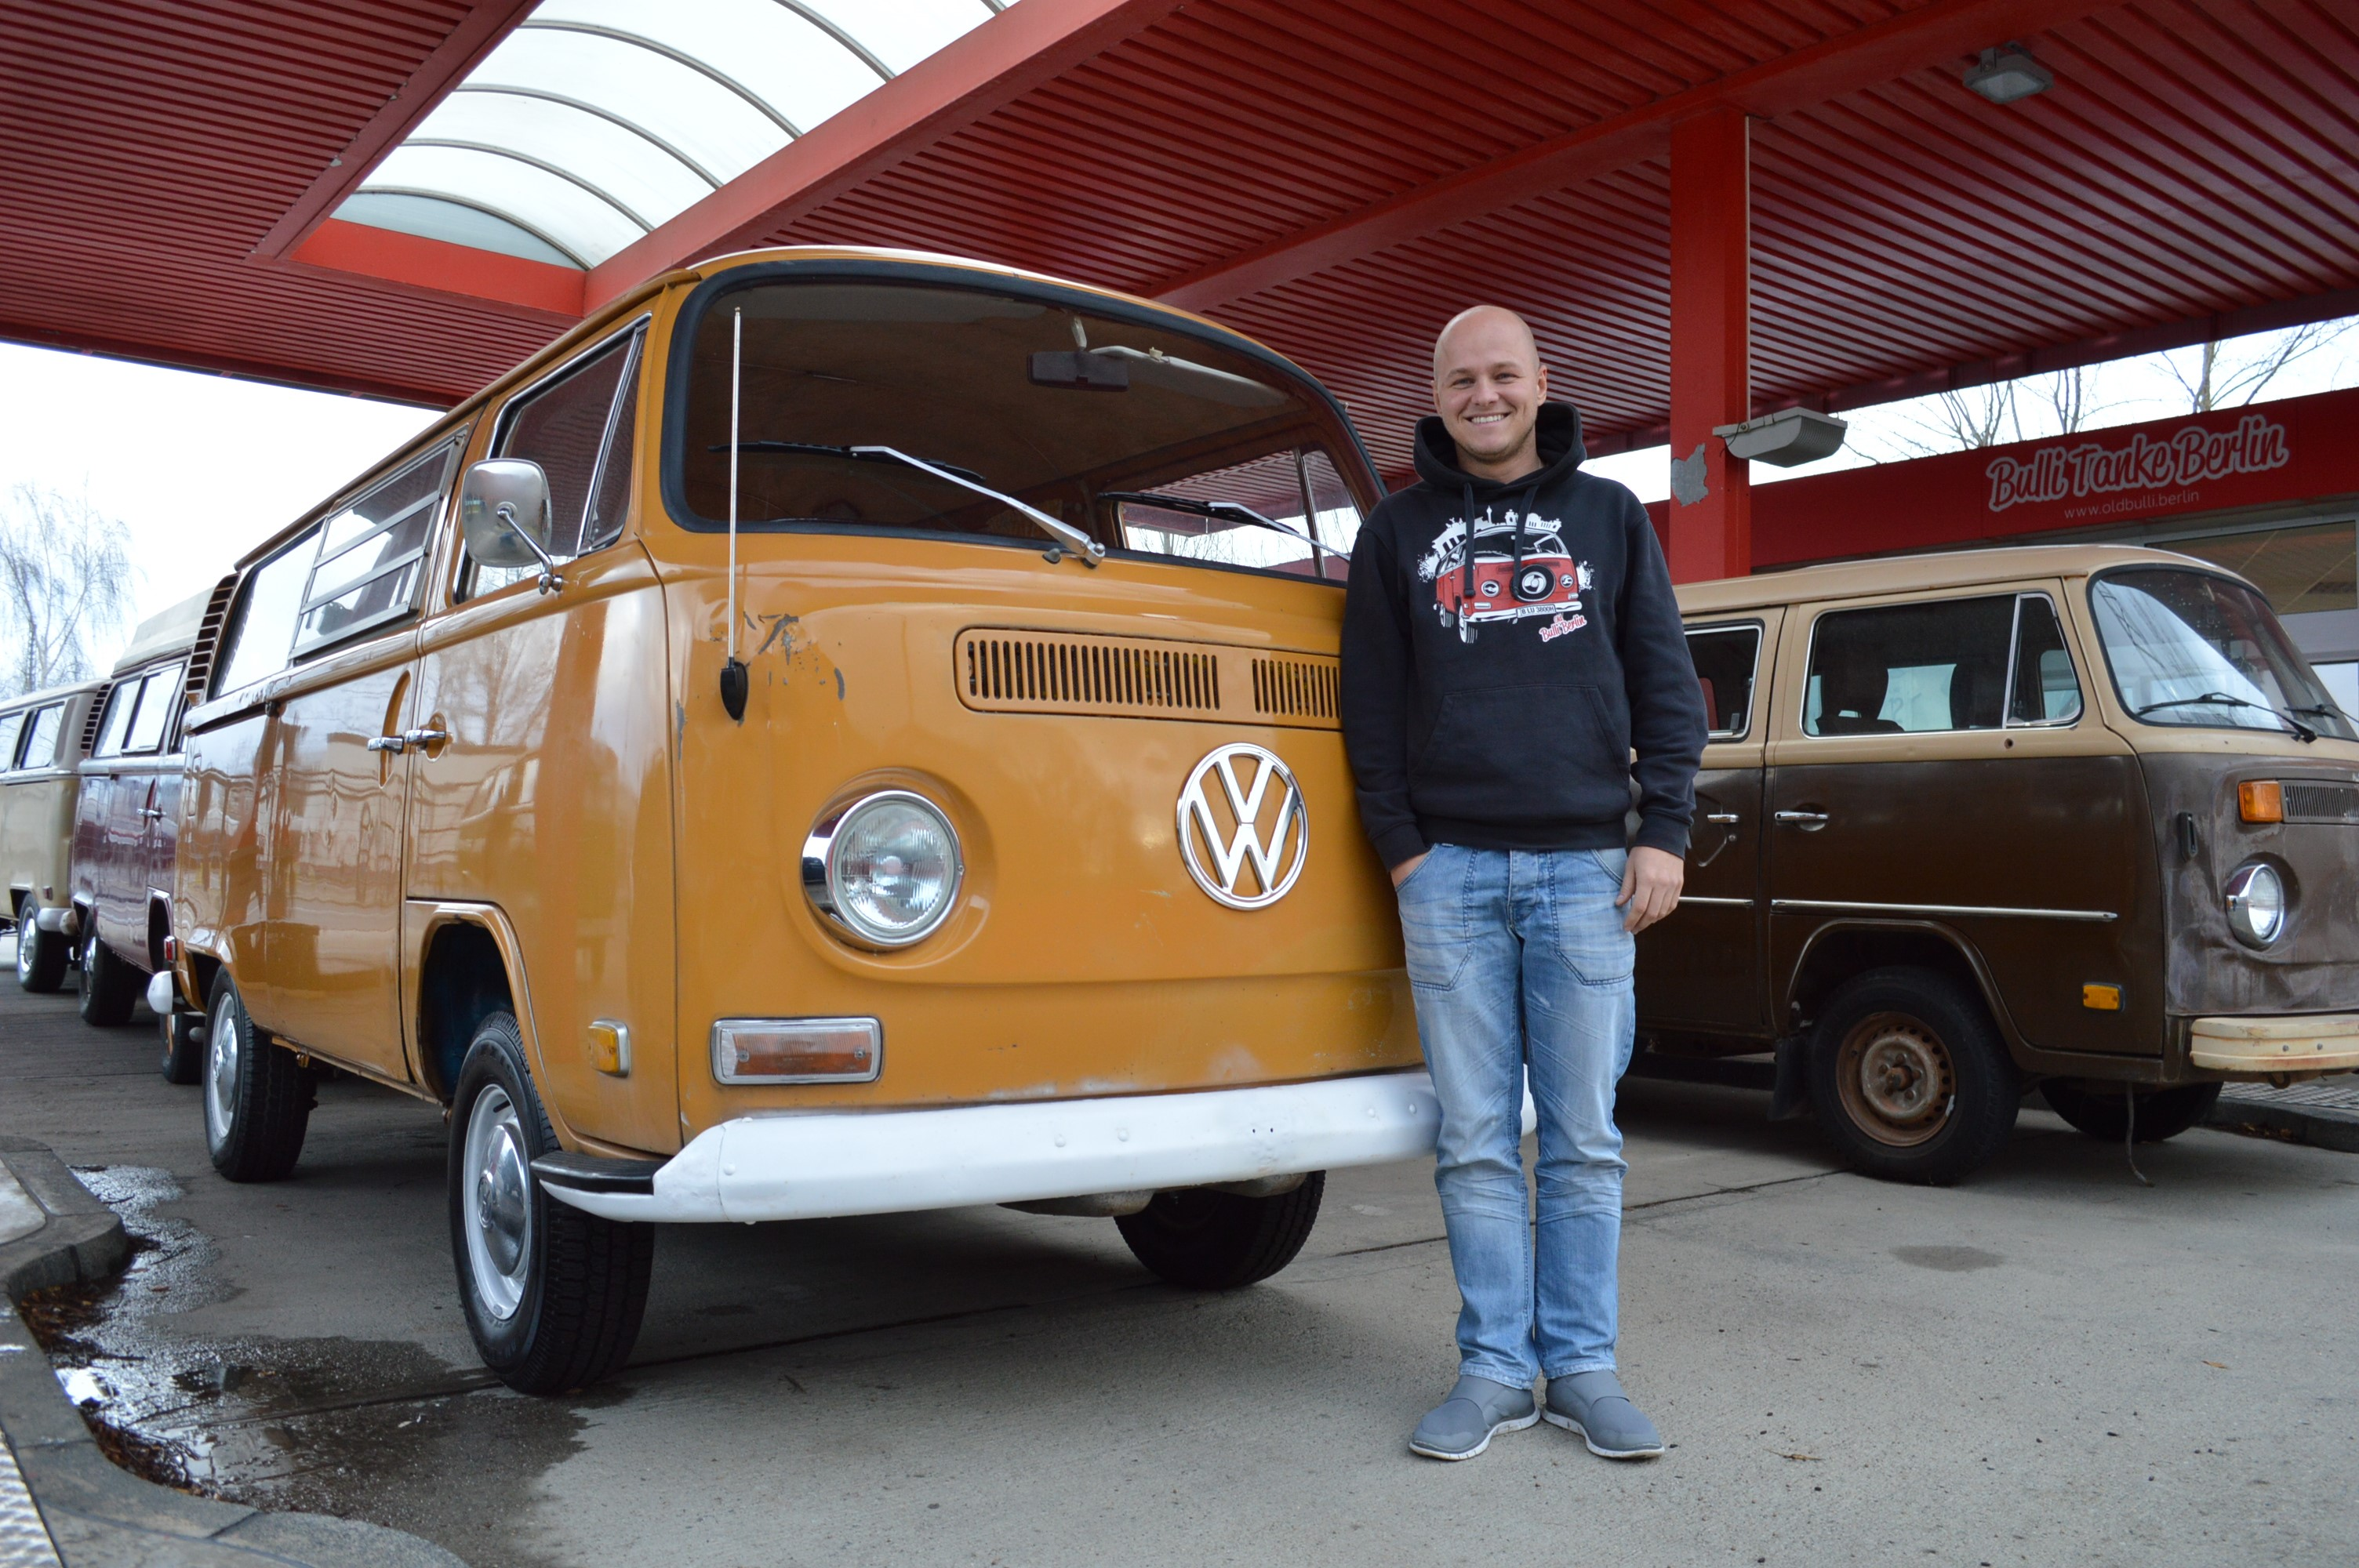 zu besuch bei old bulli berlin vw bus h ndler t2 vermietung. Black Bedroom Furniture Sets. Home Design Ideas